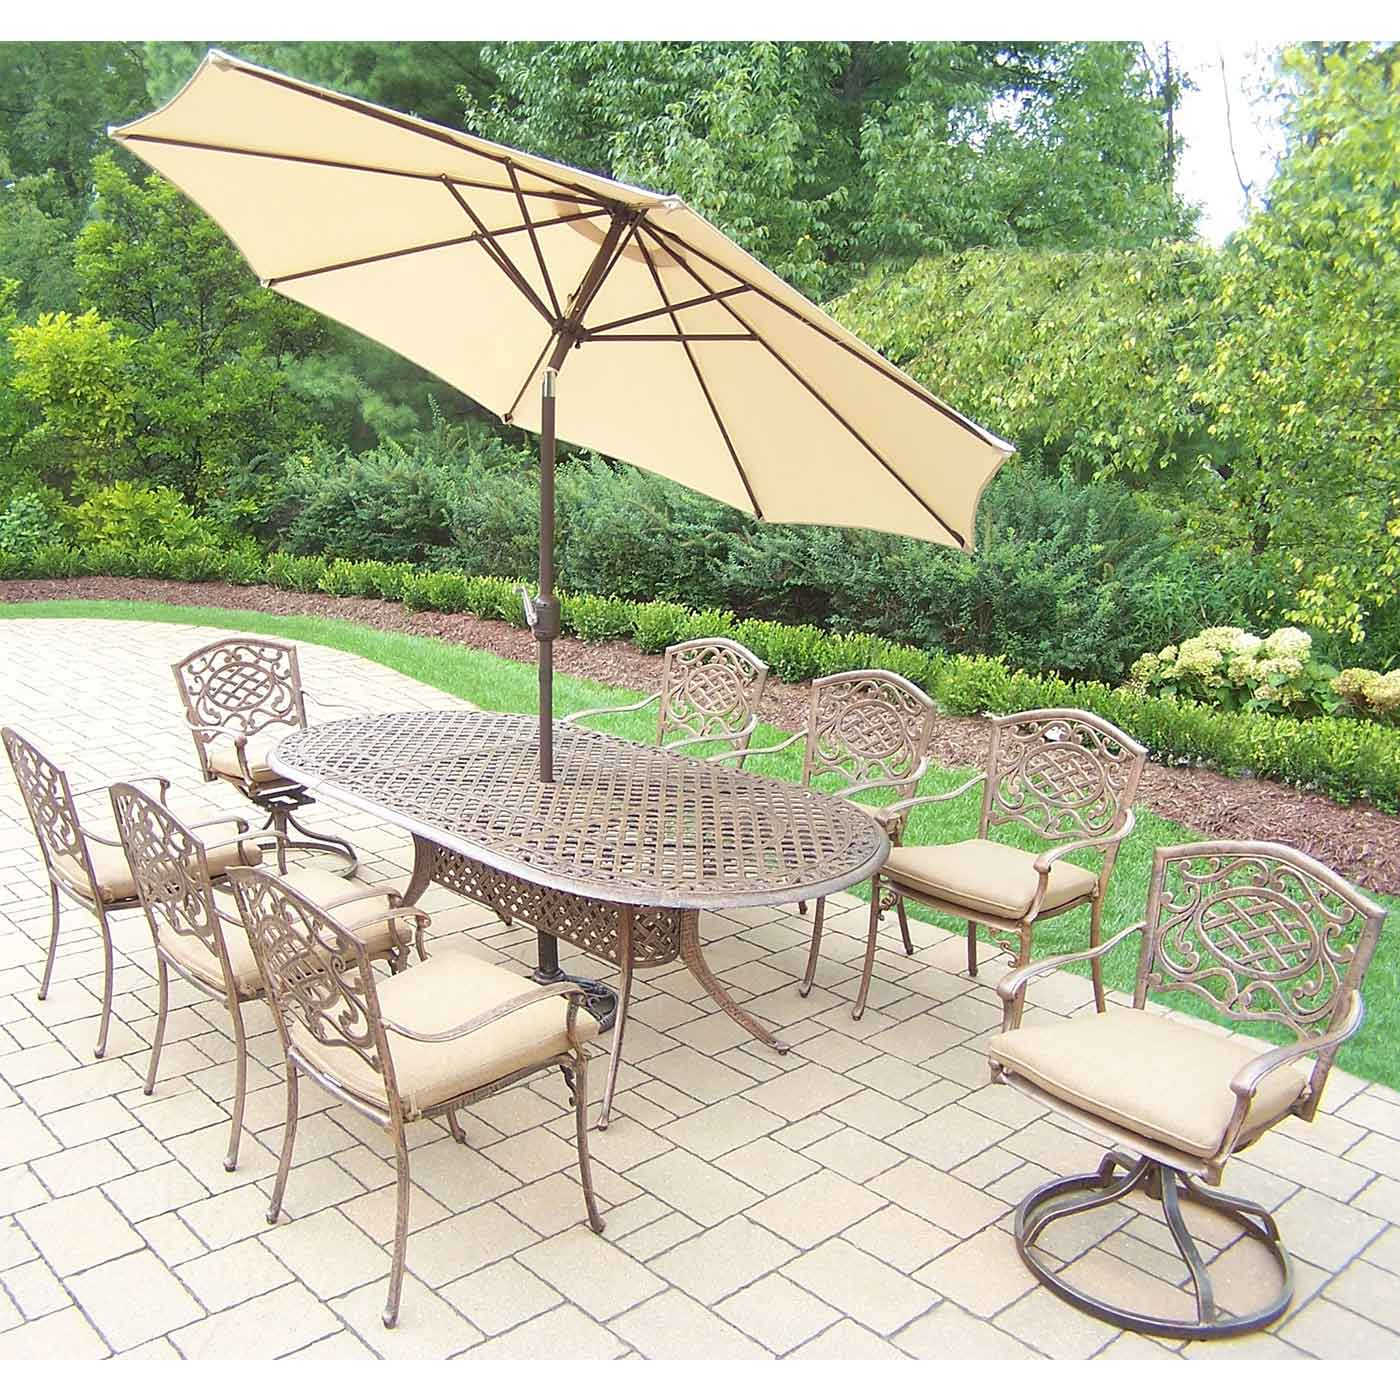 home outdoor quotations floral on dining oval shopping table find styles line guides get deals at blossom patio cheap